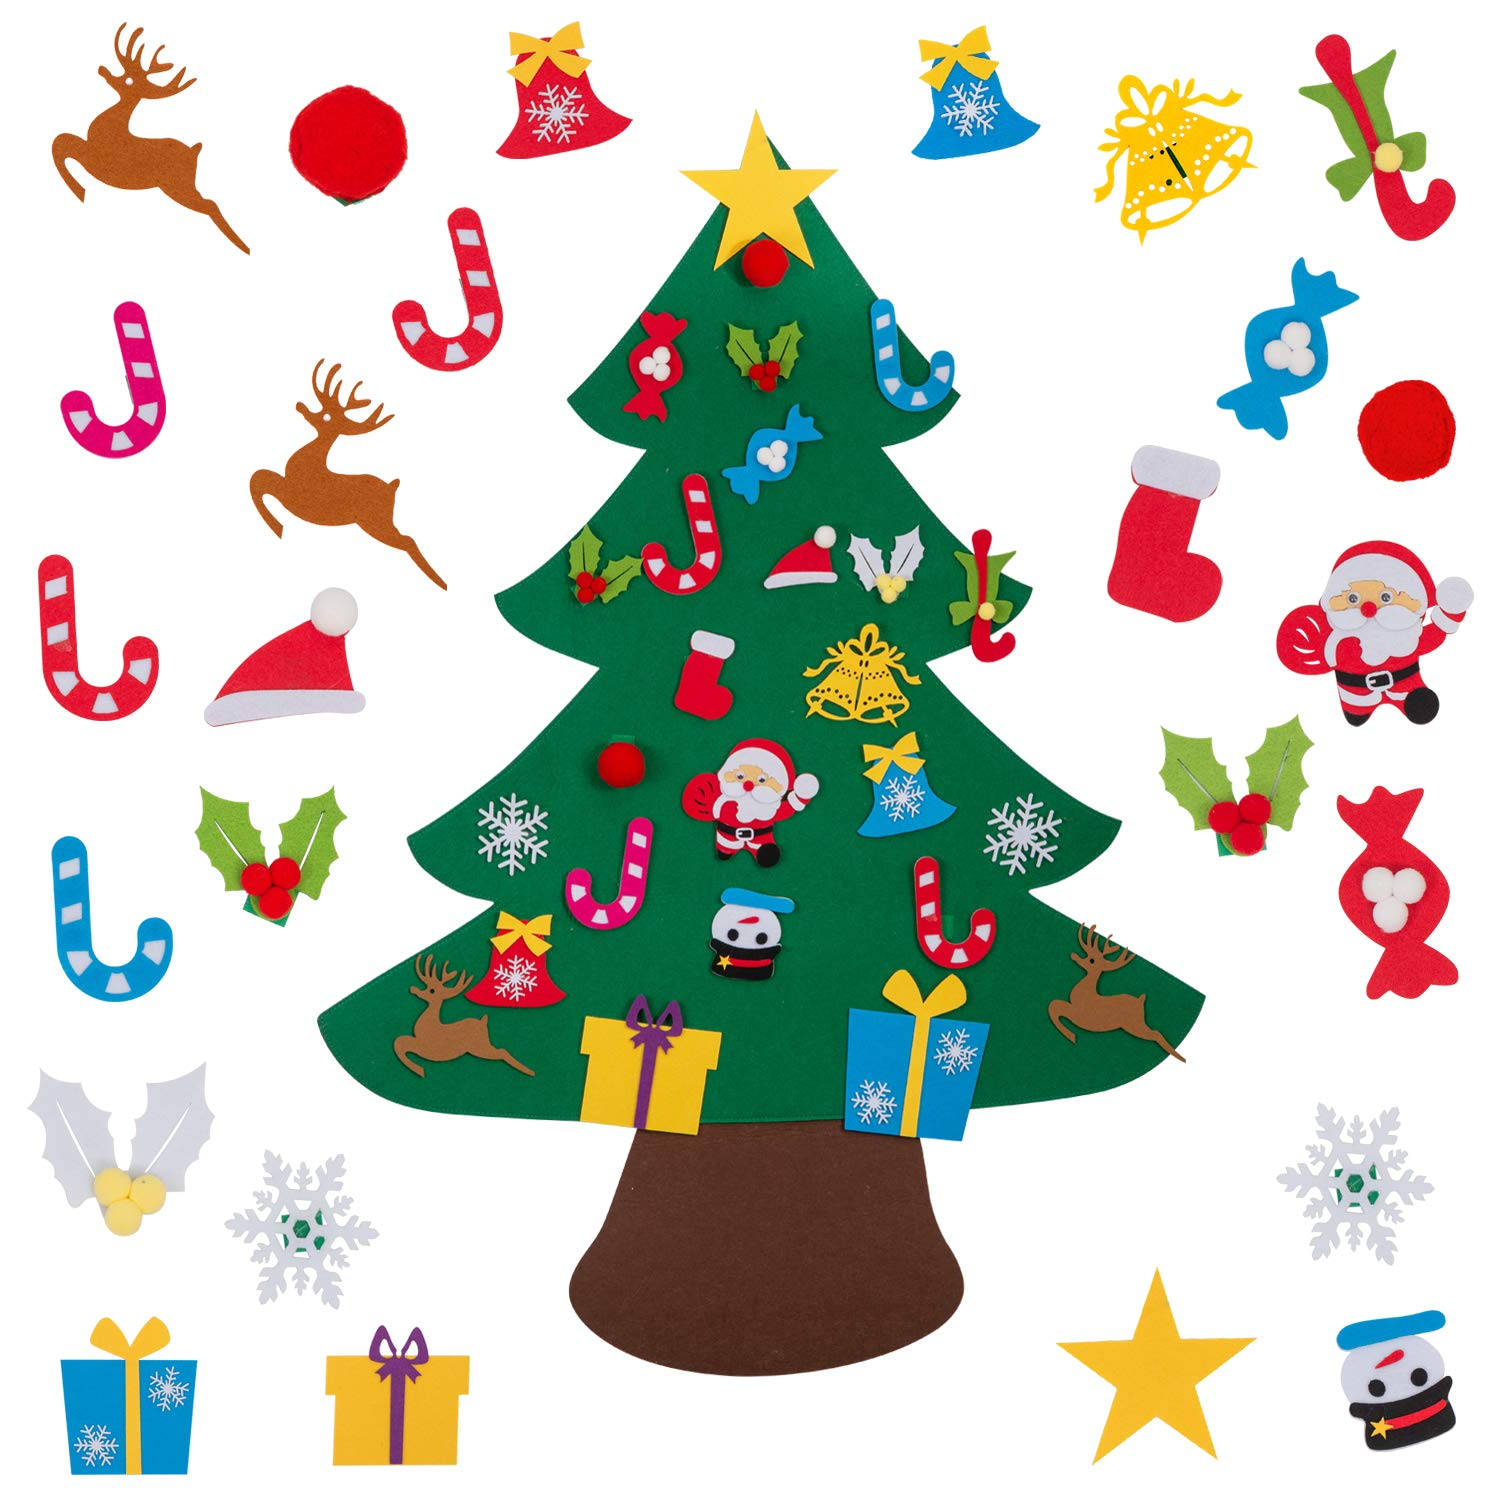 AMASKY Felt Christmas Tree, 3.35ft DIY Christmas Tree with 26 Pcs Xmas Gifts Santa Claus Ornaments Wall Decor with Hanging Rope for Home Door Decoration